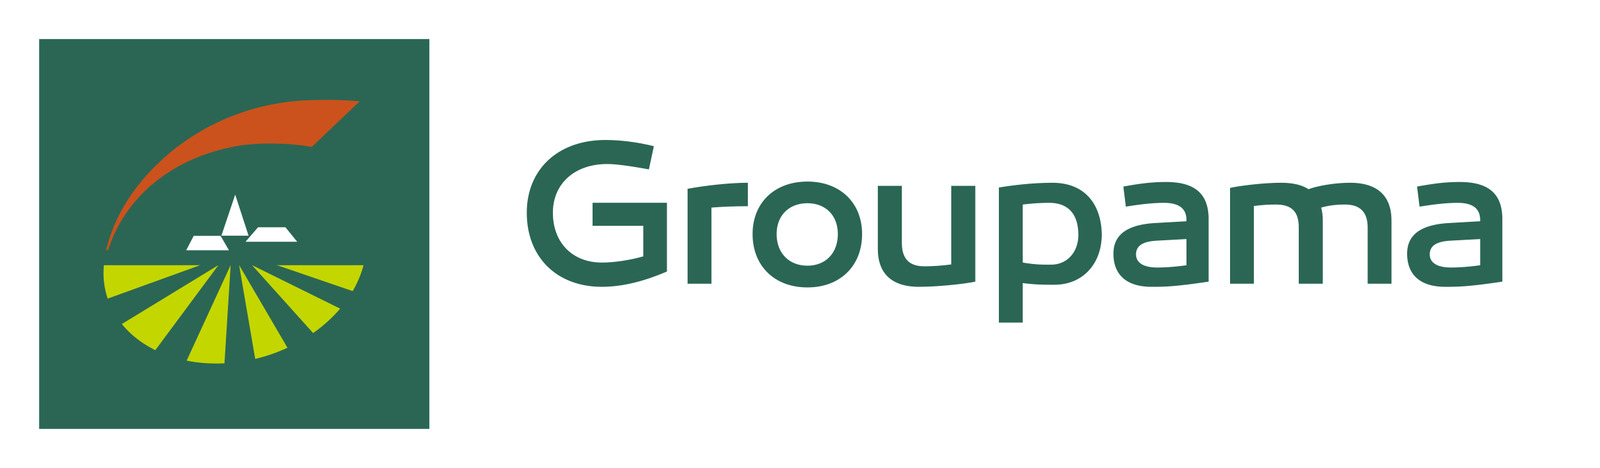 Groupama_FB_RVB.jpg